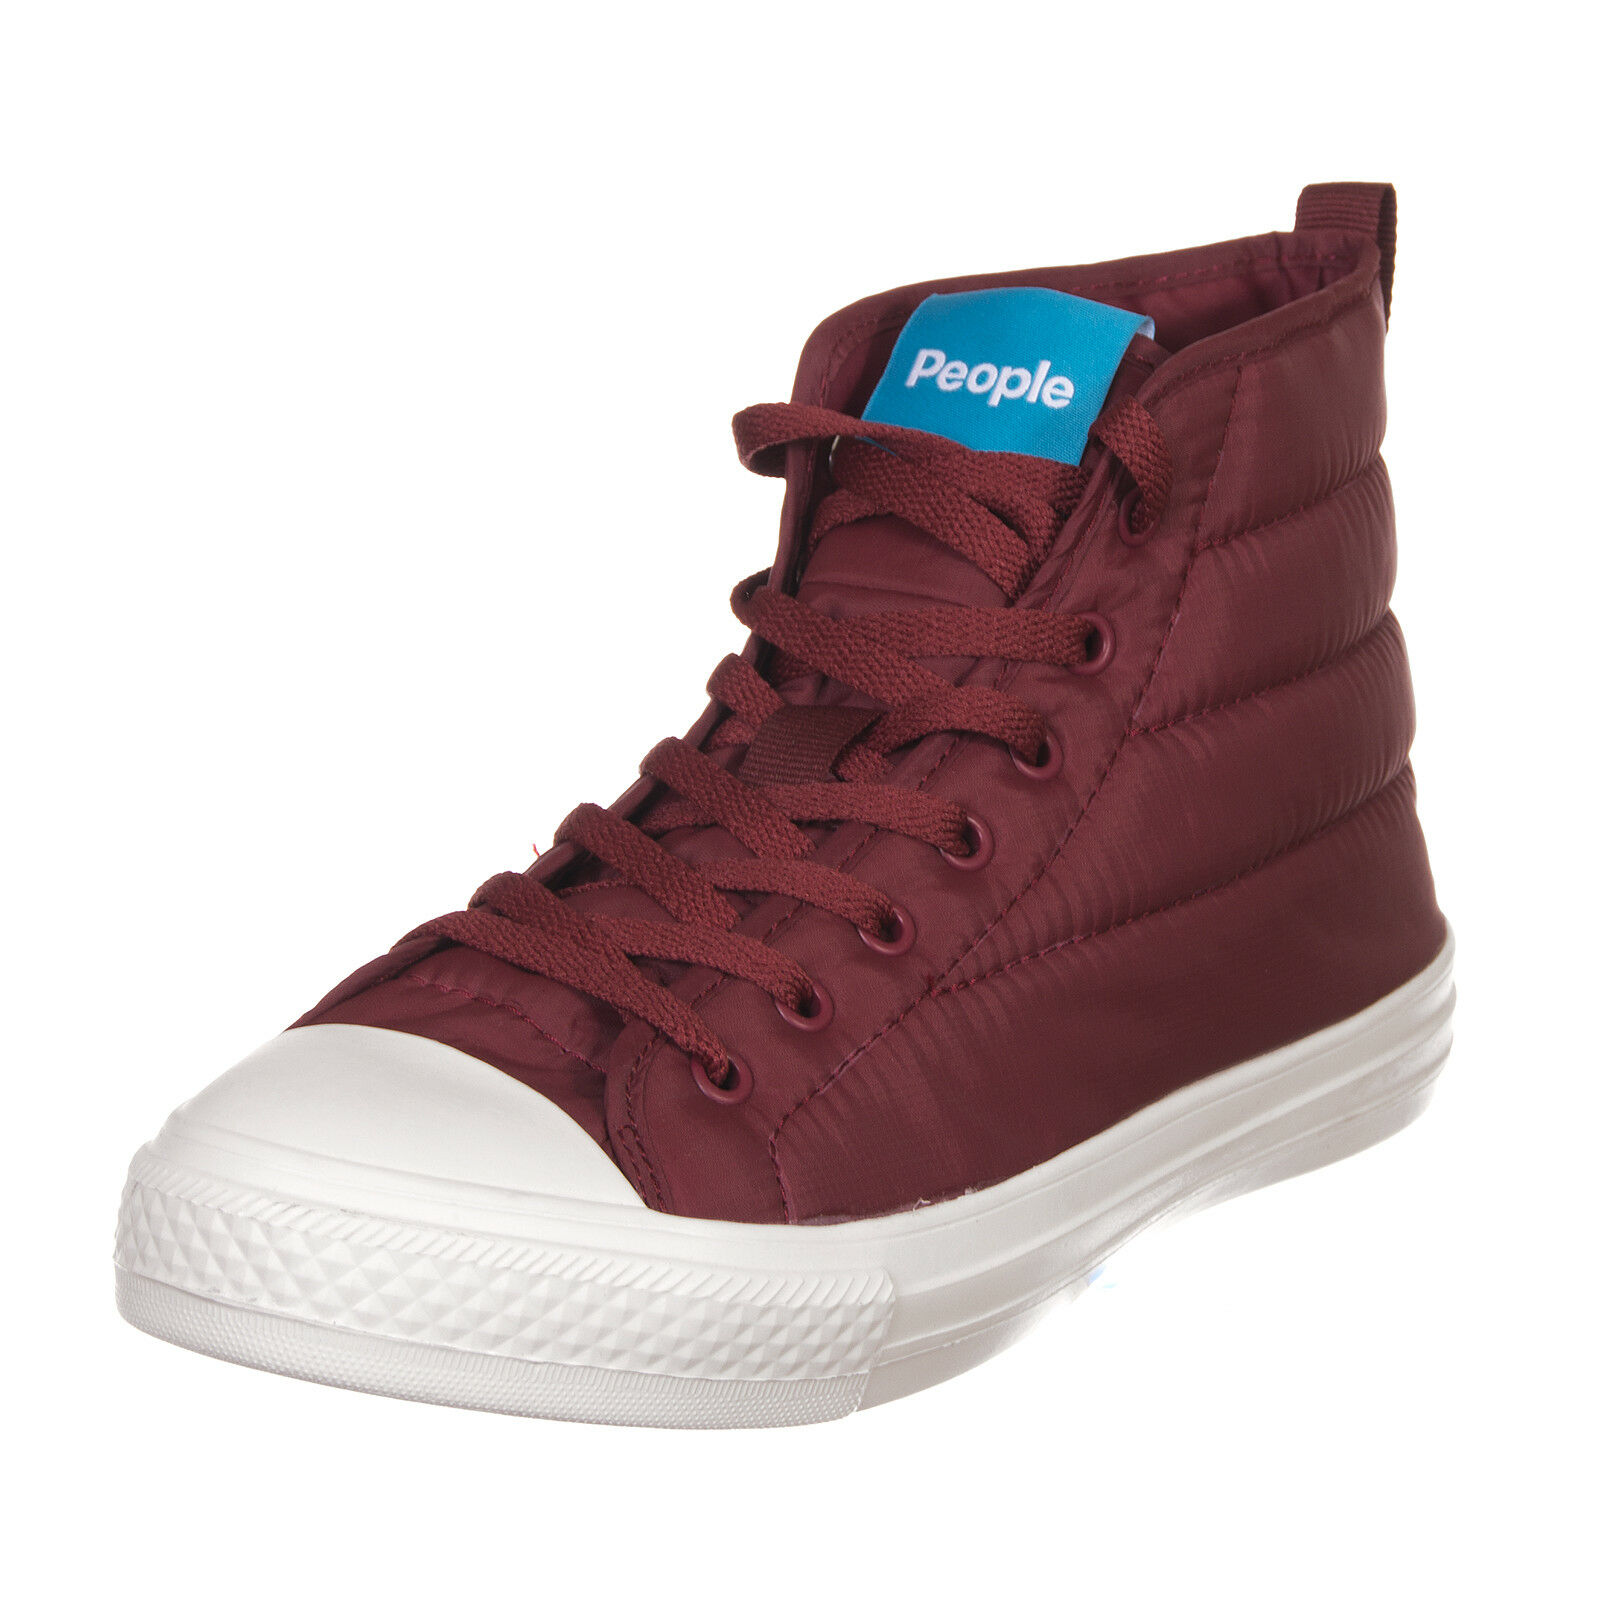 b31a5cba4e PEOPLE PEOPLE PEOPLE chaussures Chaussure s campionario sample man bordeaux  M54 19e19f